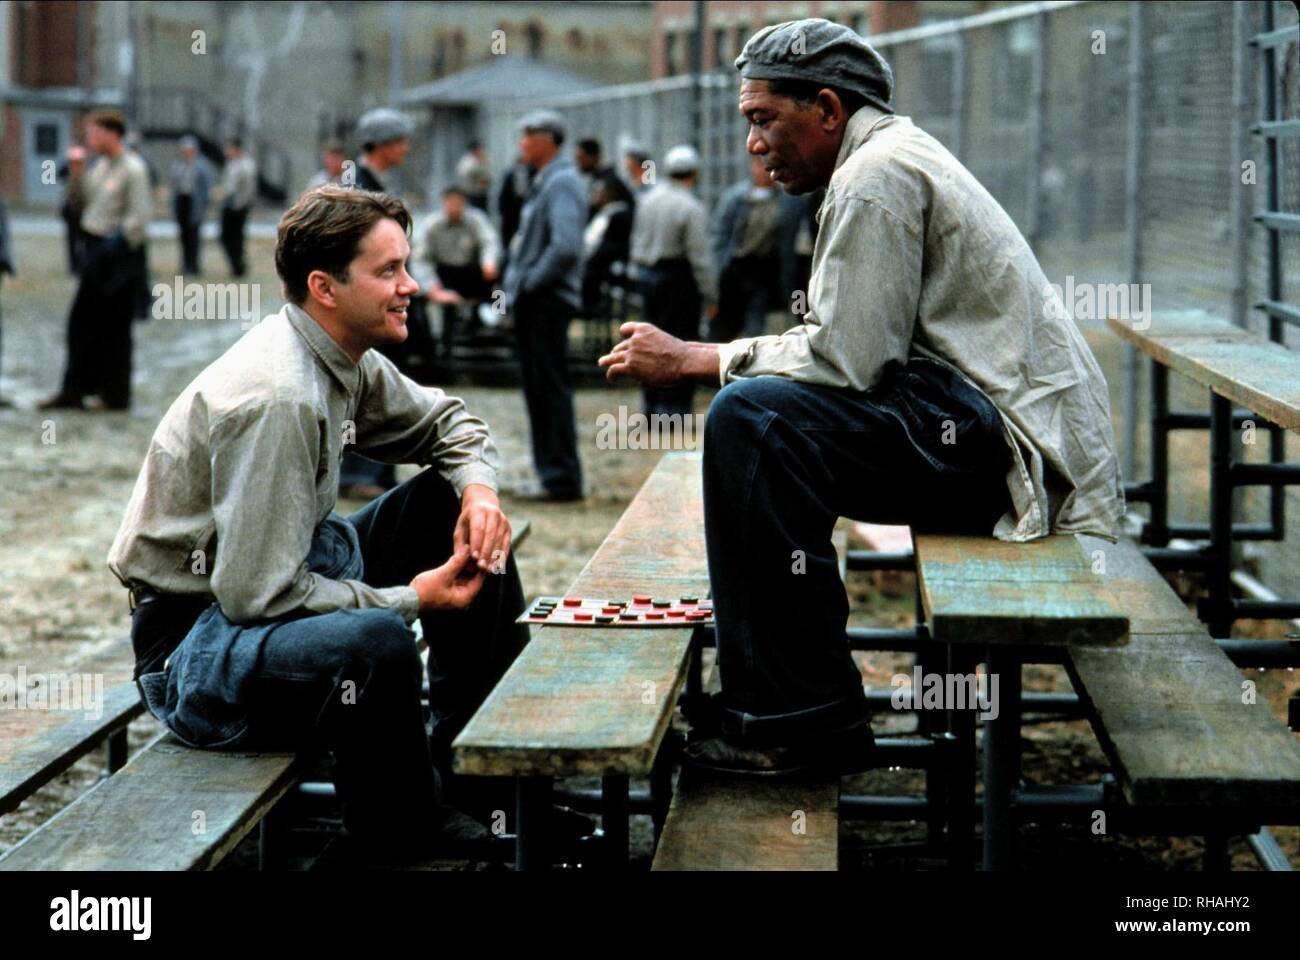 THE SHAWSHANK REDEMPTION, TIM ROBBINS , MORGAN FREEMAN, 1994 - Stock Image